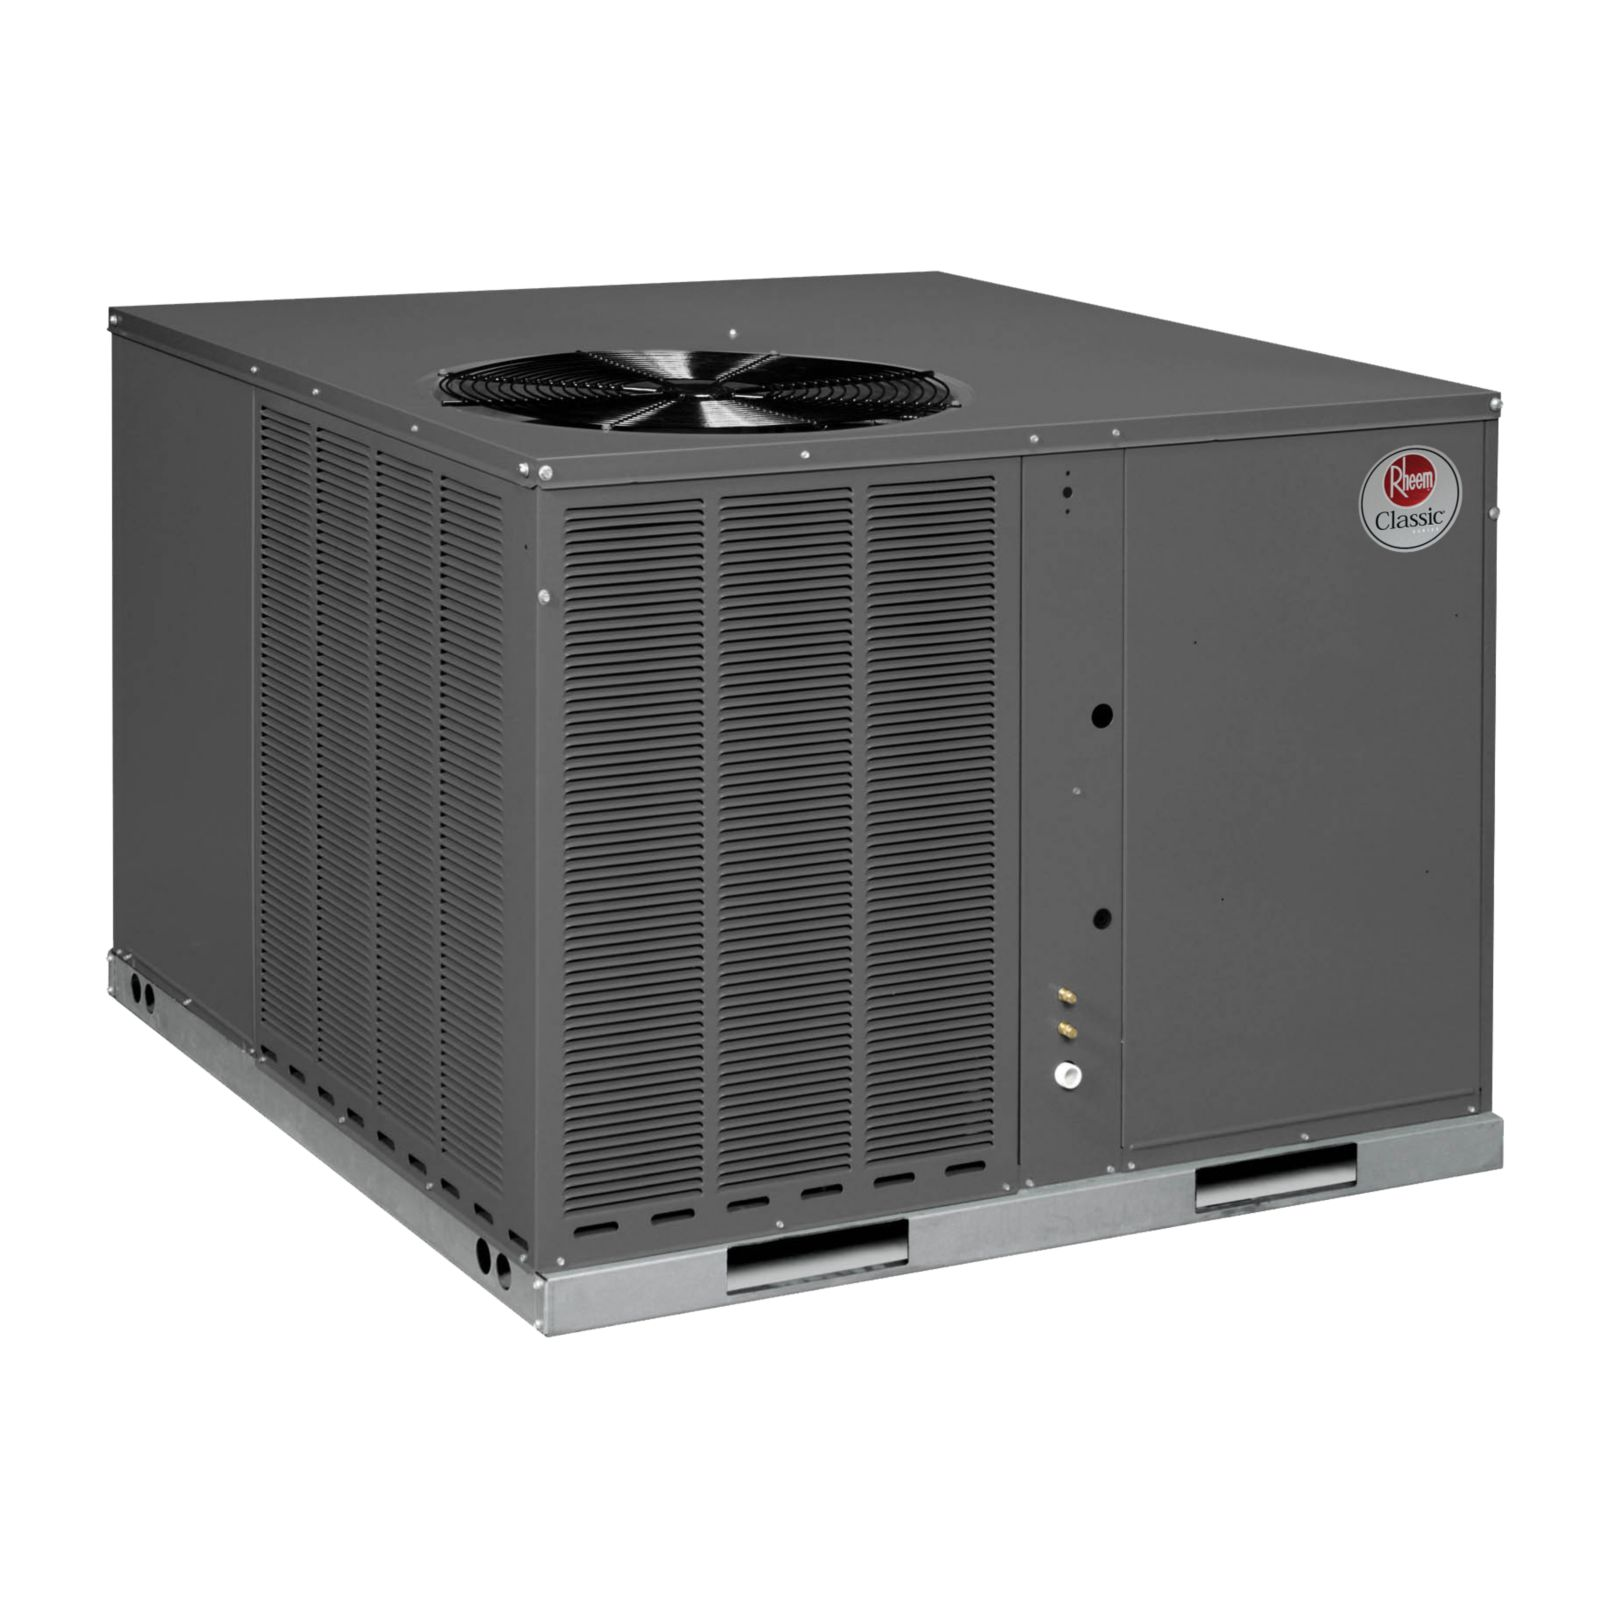 Rheem RQPL-B036JK000AUA - 3 Ton 14 SEER, R-410A, Packaged Heat Pump, 208-230V, 1 Phase